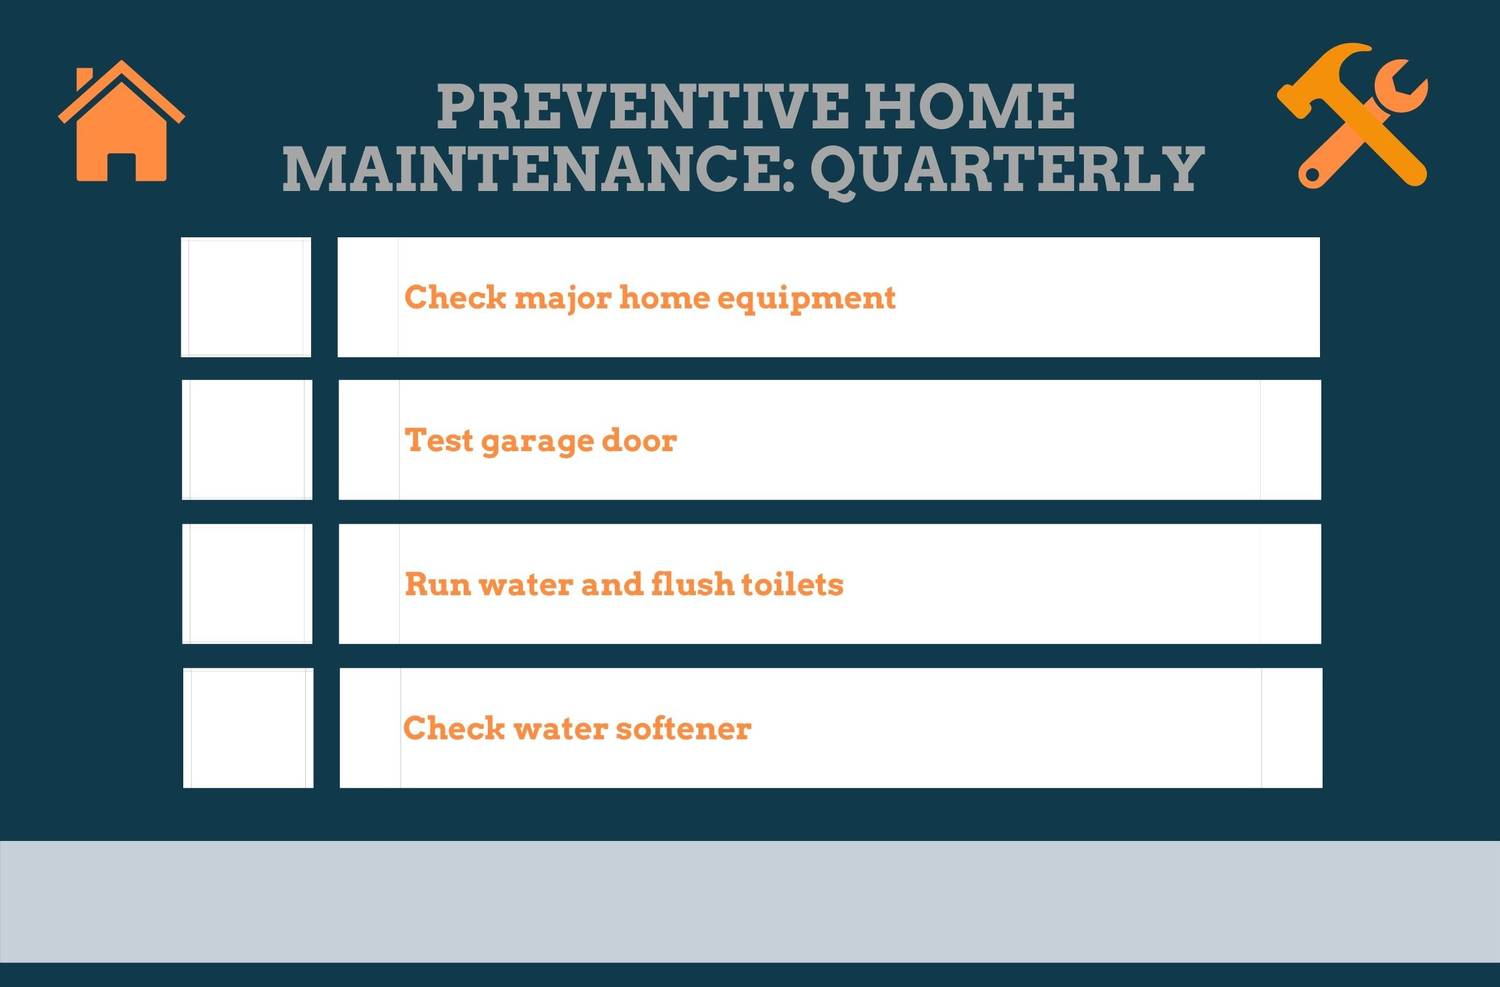 Quarterly Preventive Home Maintenance